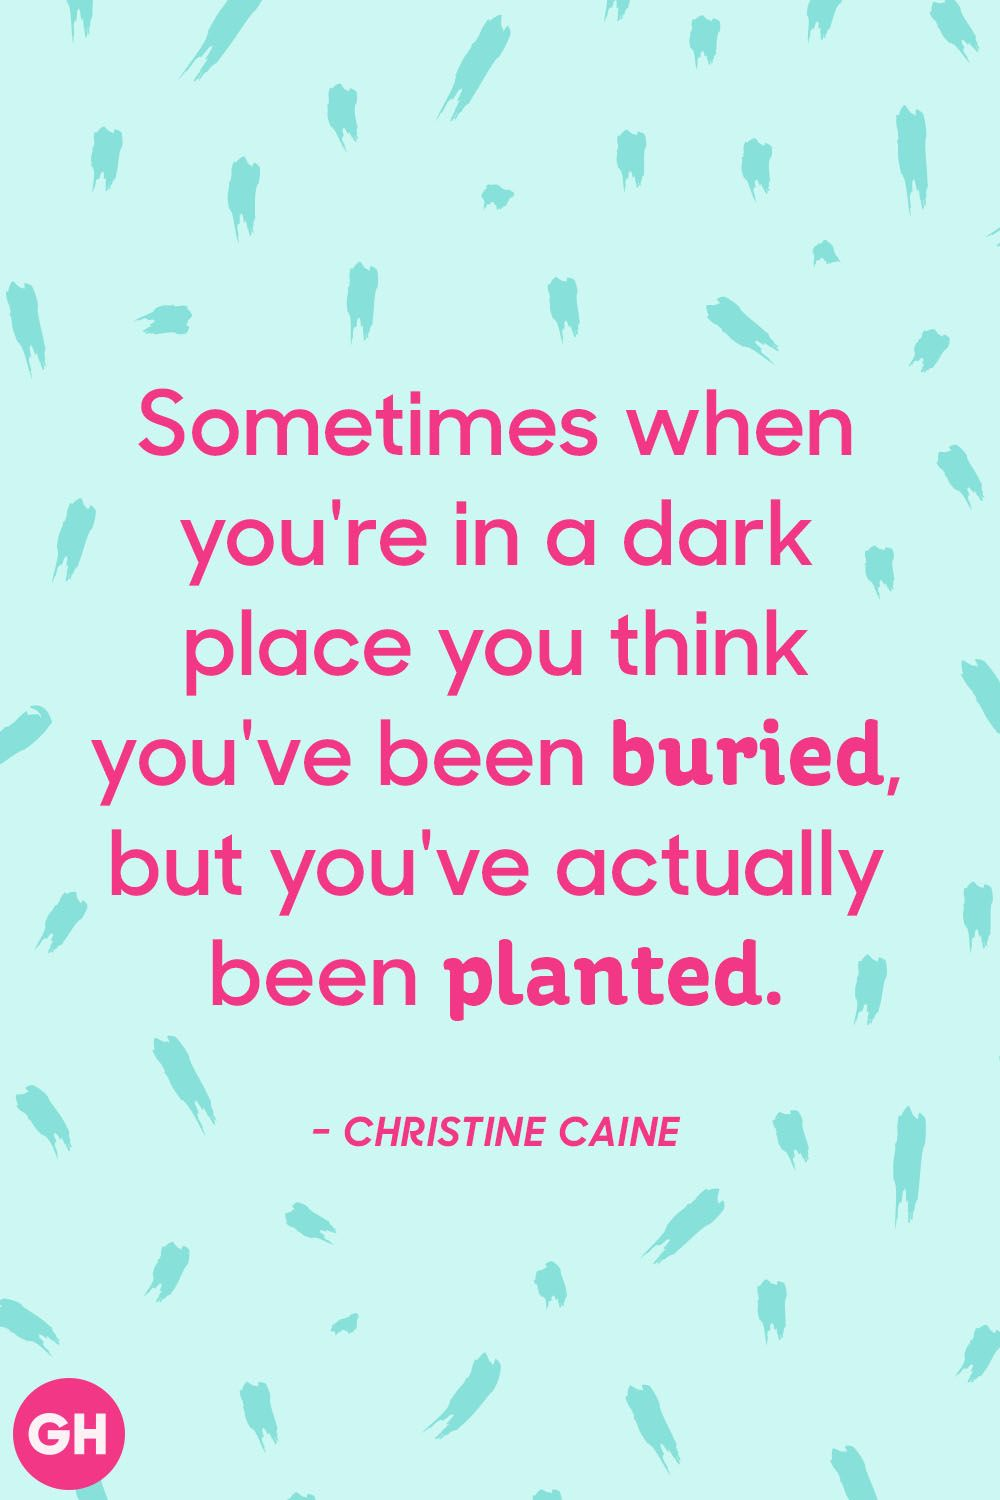 christine caine optimistic quotes